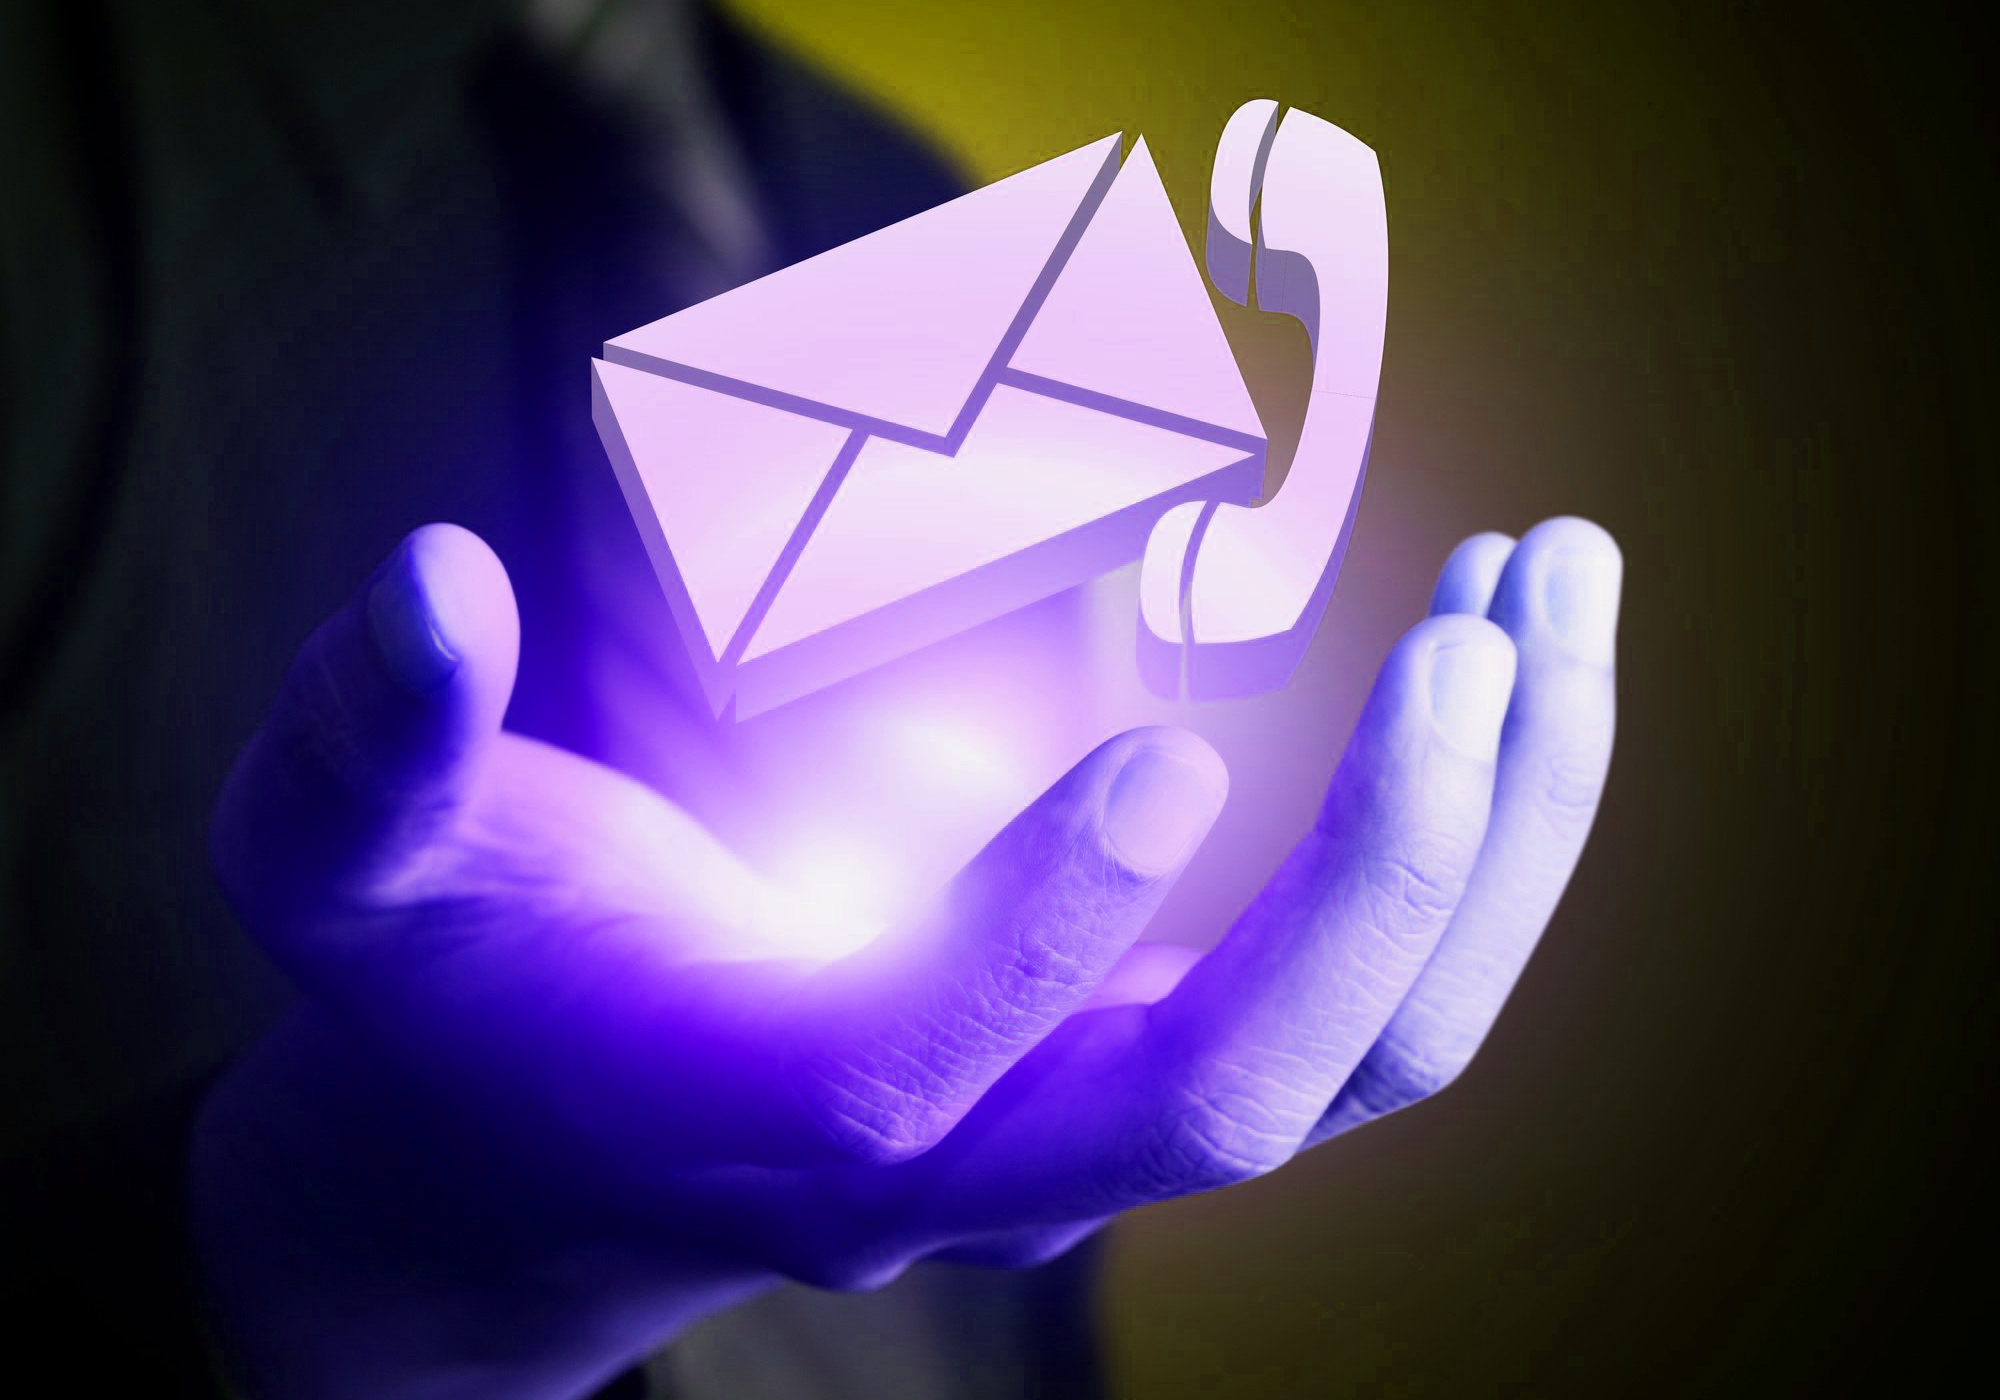 Glowing phone and email icons in a man's hand